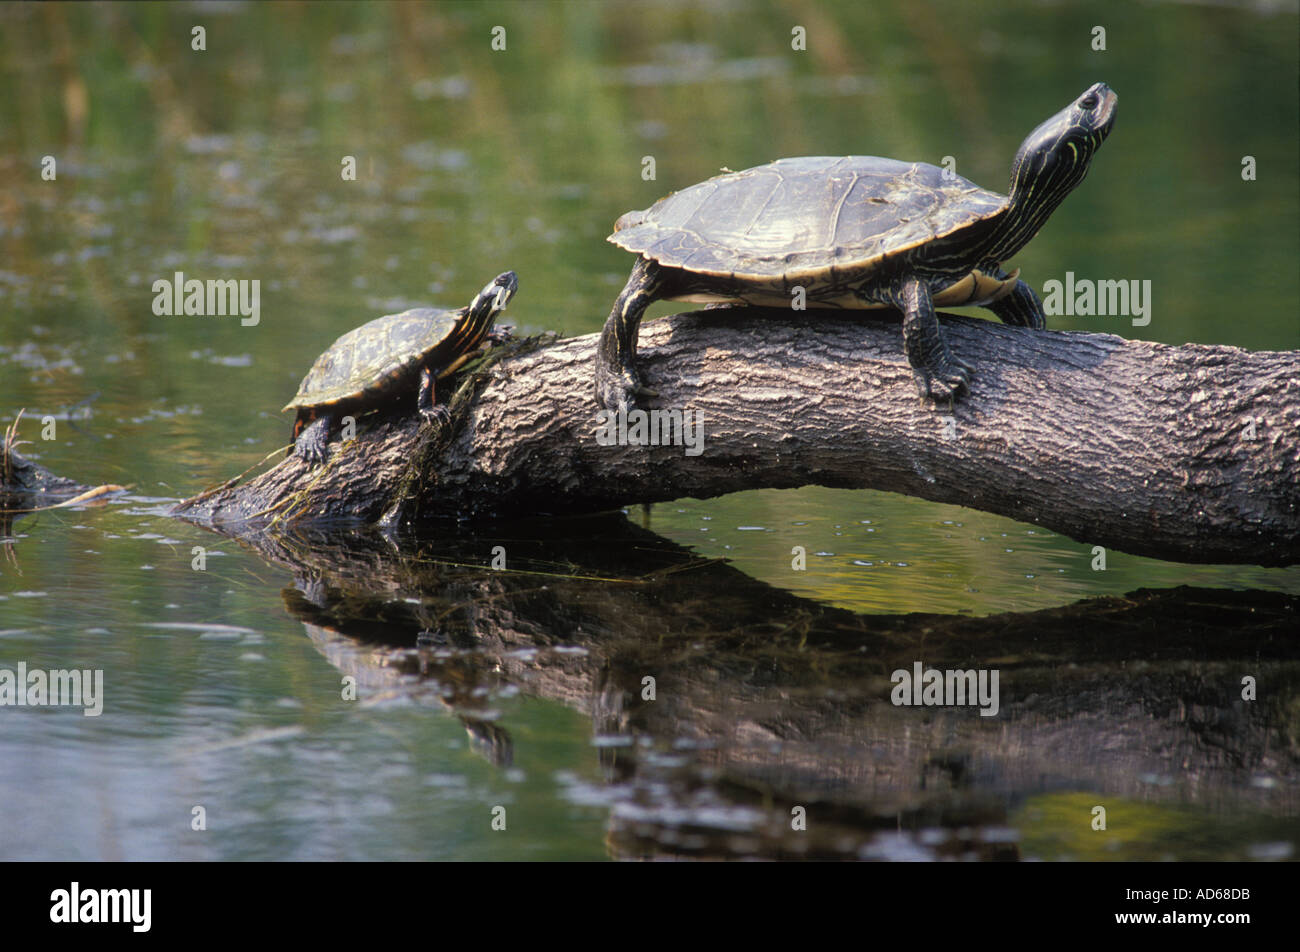 Les tortues peintes au soleil sur un journal Photo Stock